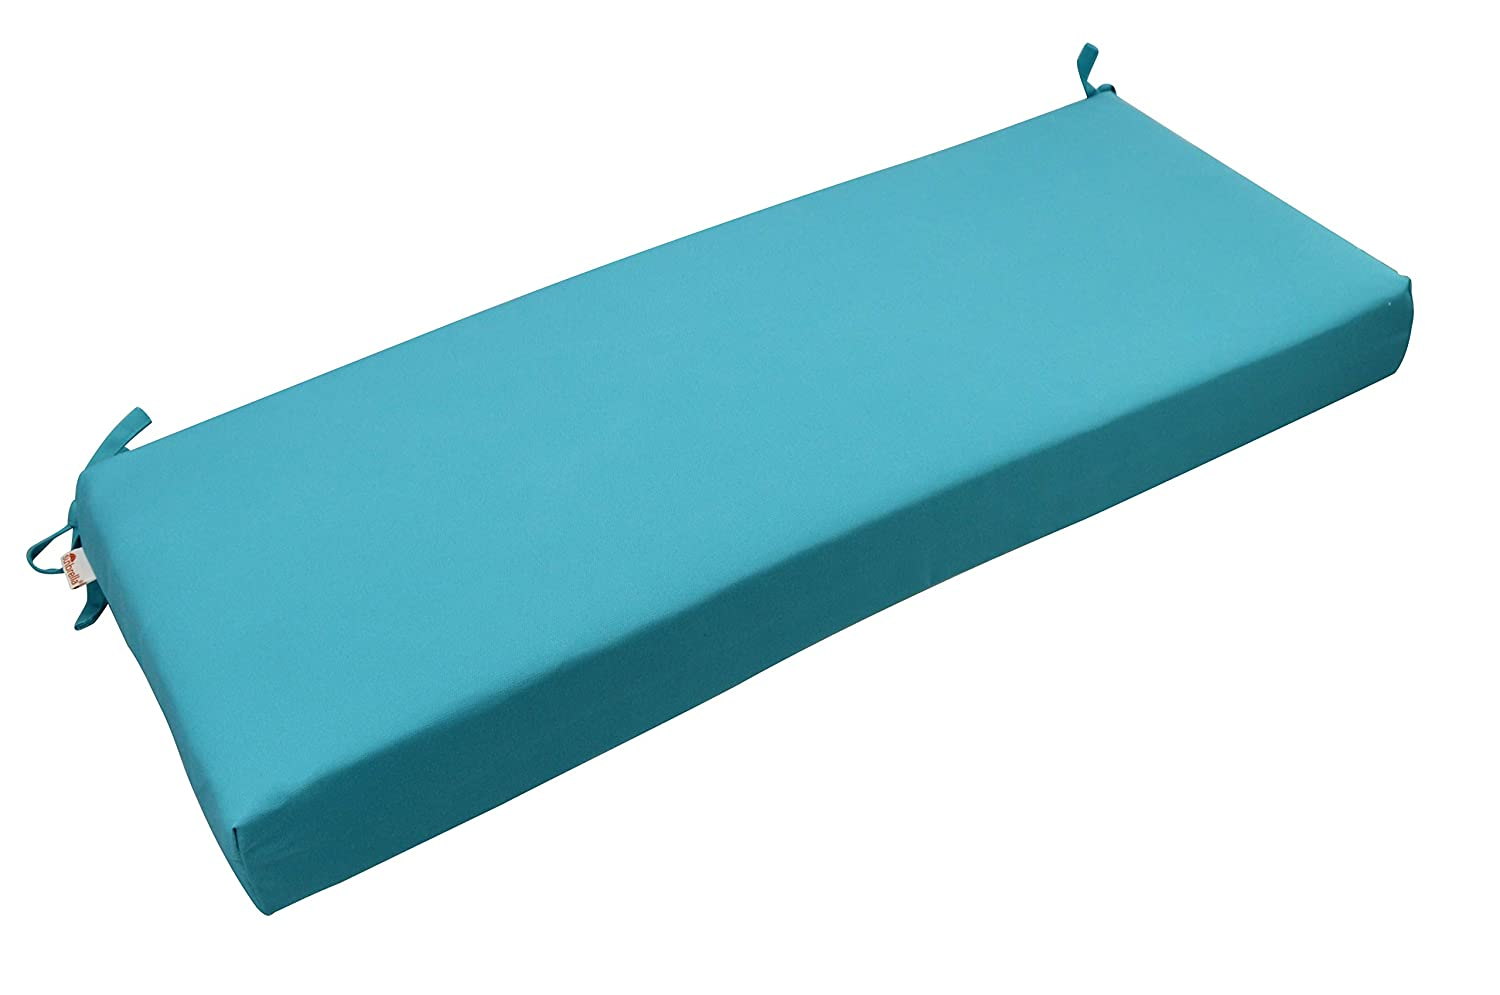 RSH D cor Indoor Outdoor Bench Cushion Made from Premium Sunbrella Canvas Aruba Blue Teal Fabric – 3 Thick Foam Bench Pad with Ties – Choose Size 72 x 20